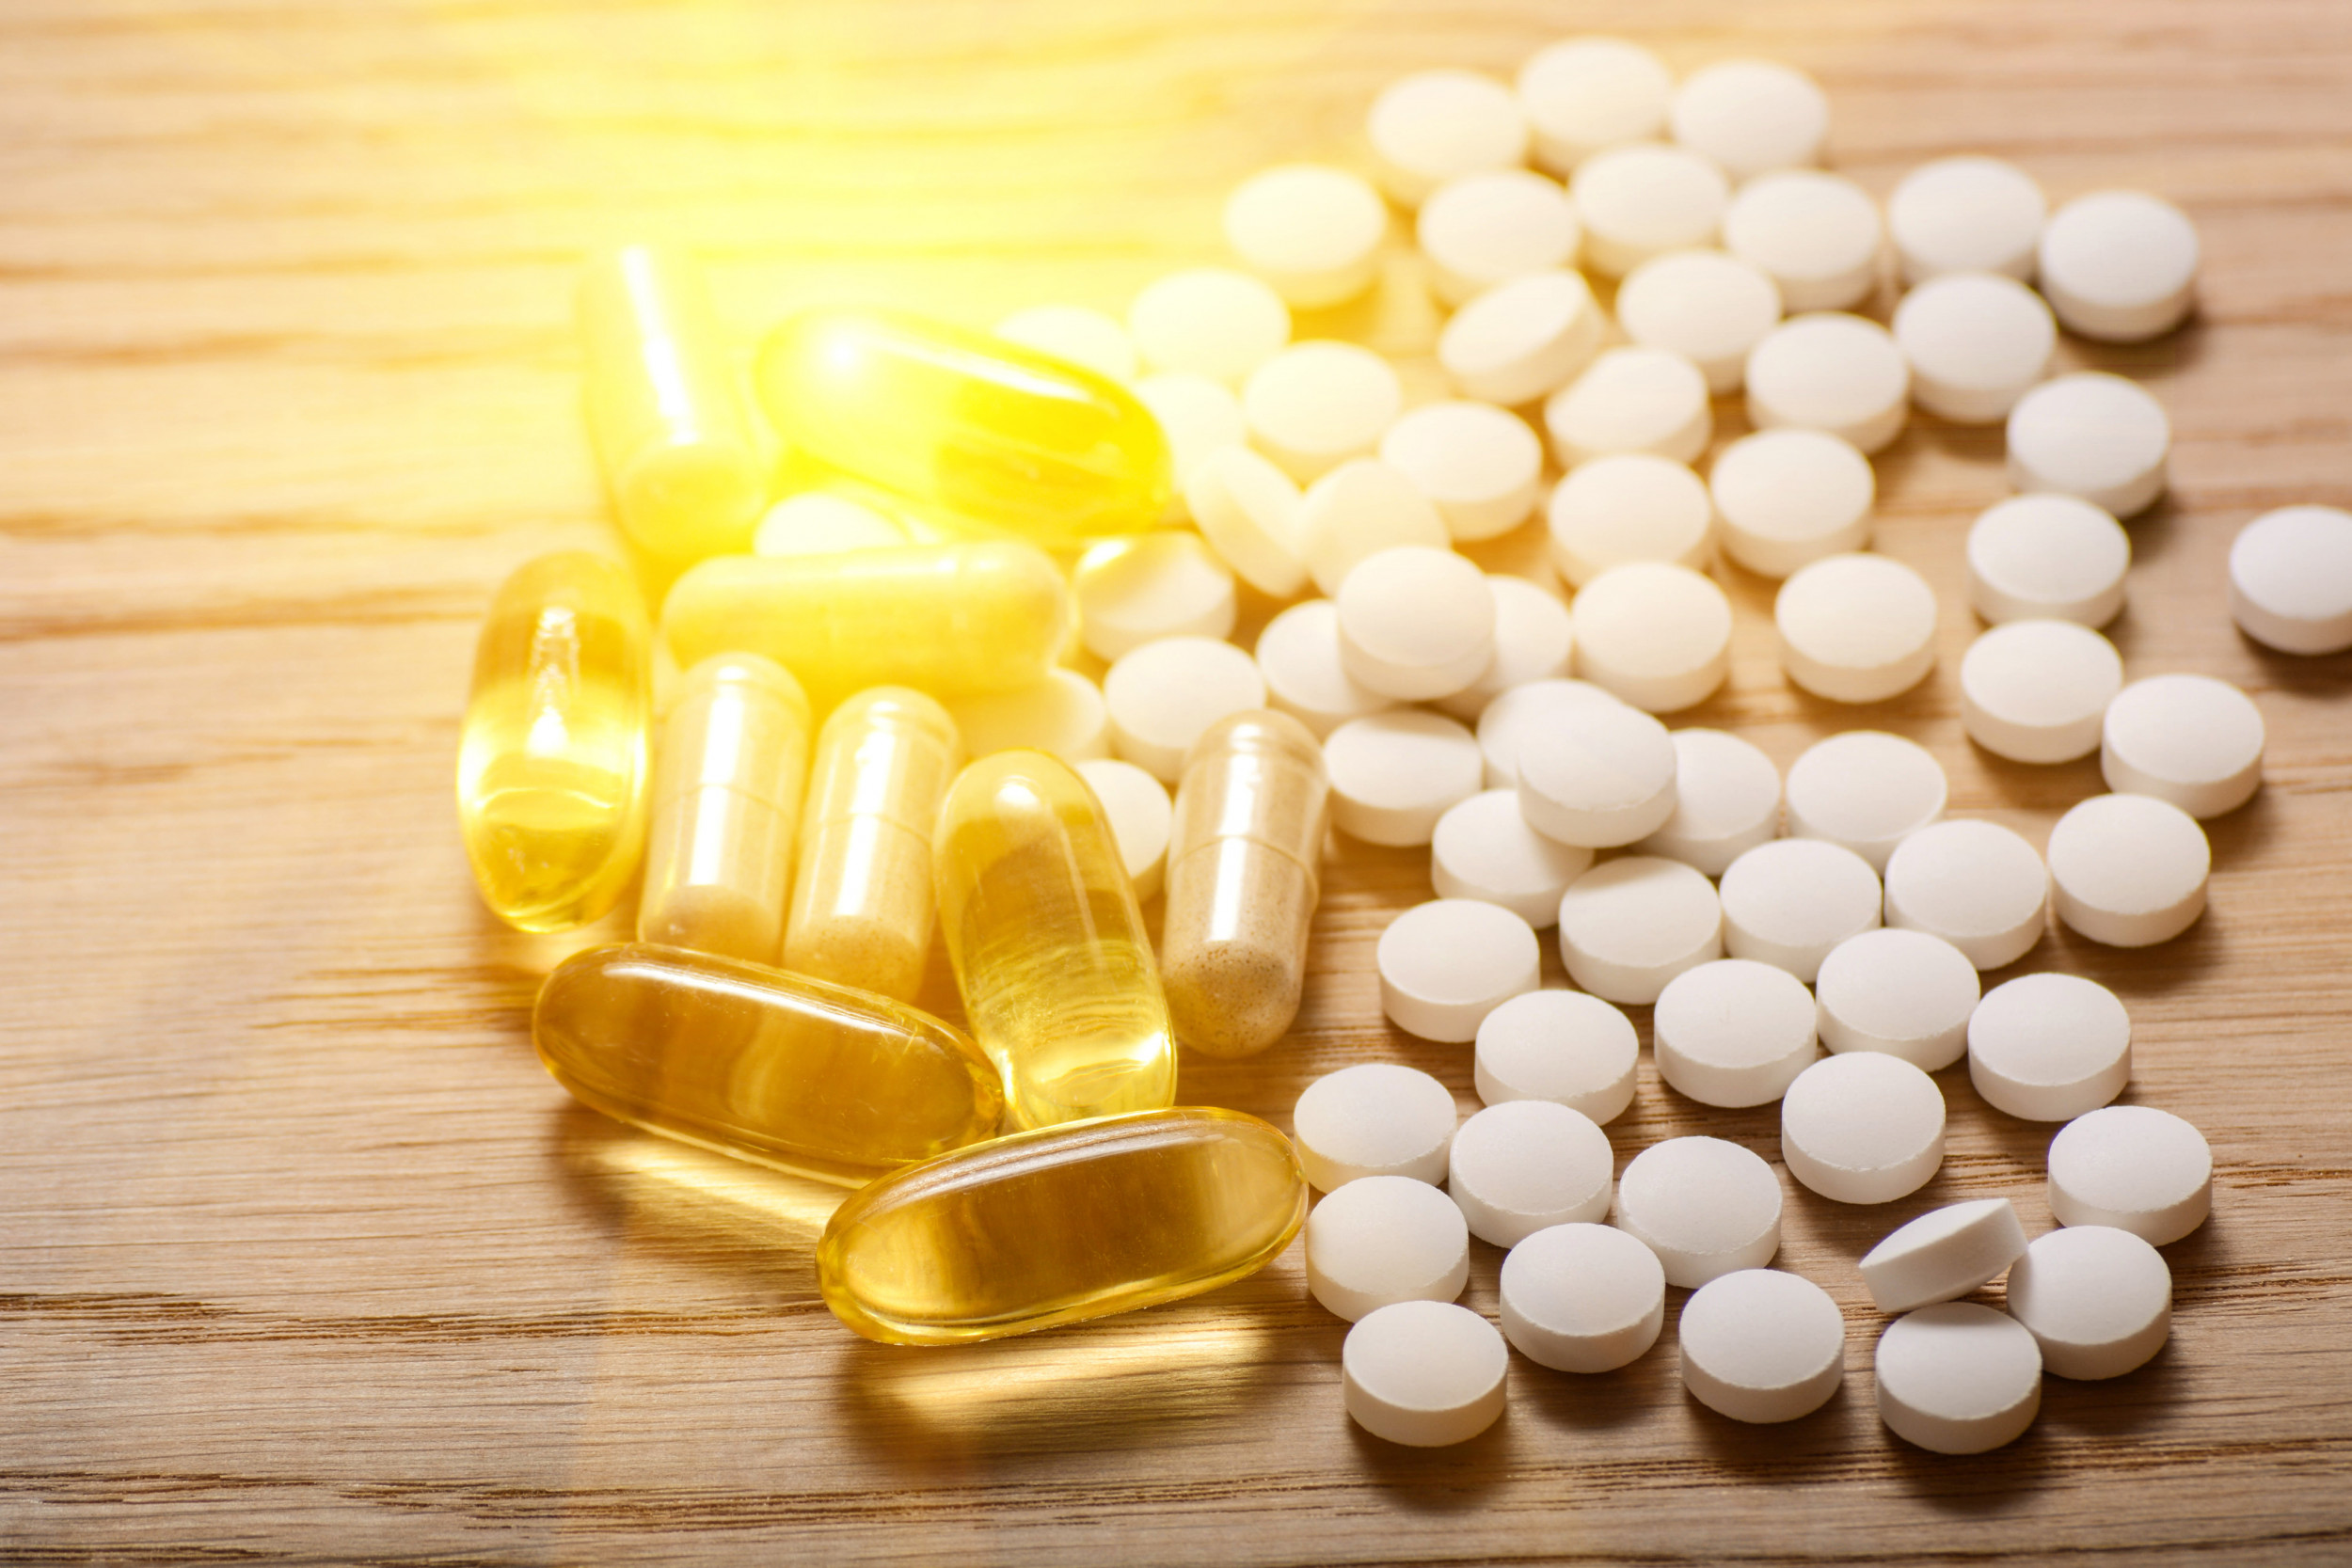 Vitamin D supplements do not reduce inflammation risk